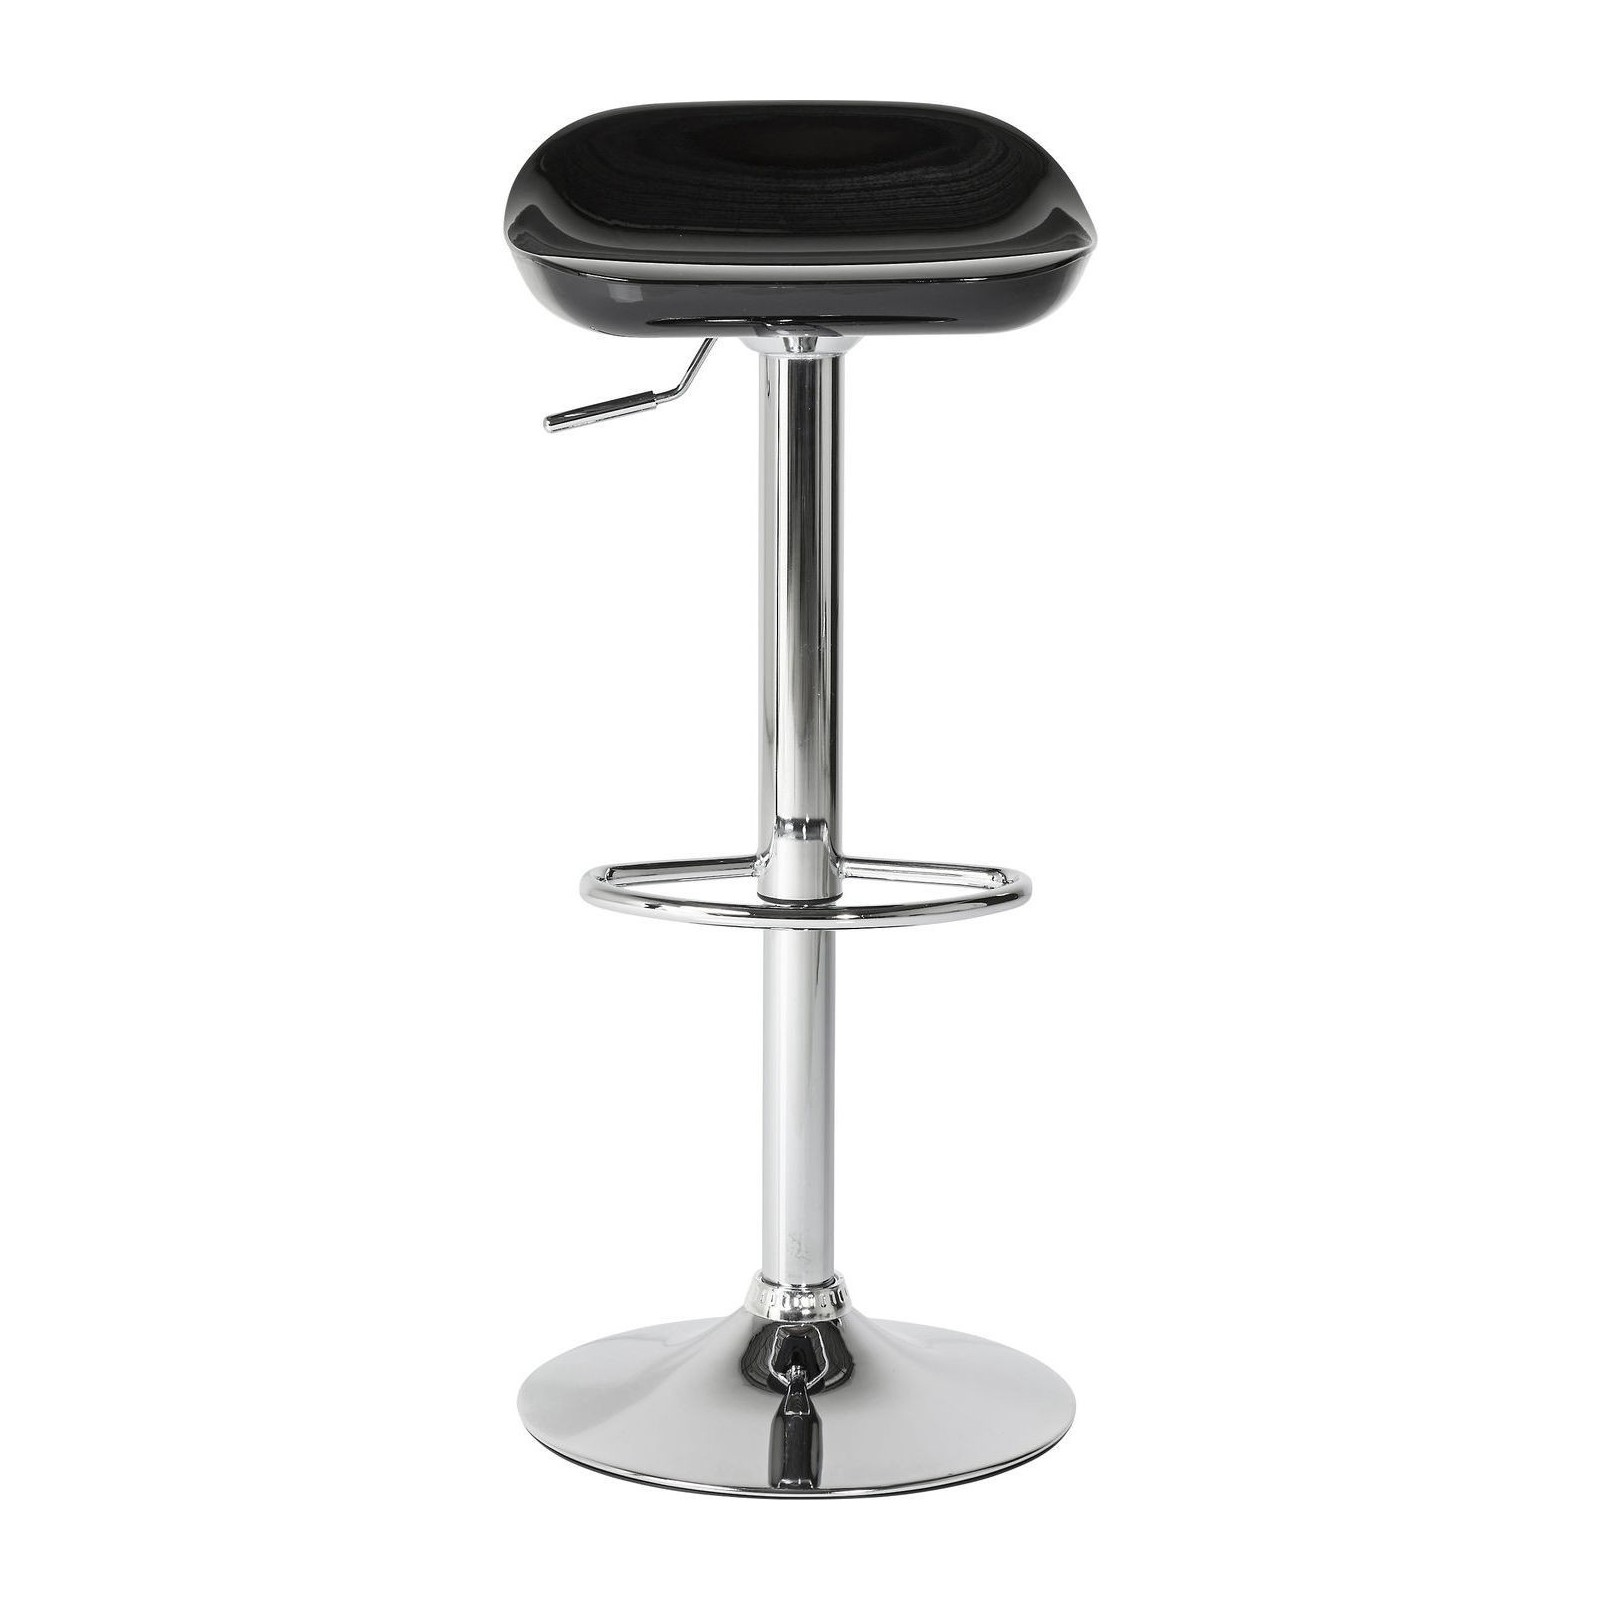 tabouret de bar design noir pivotant bucket meubles. Black Bedroom Furniture Sets. Home Design Ideas